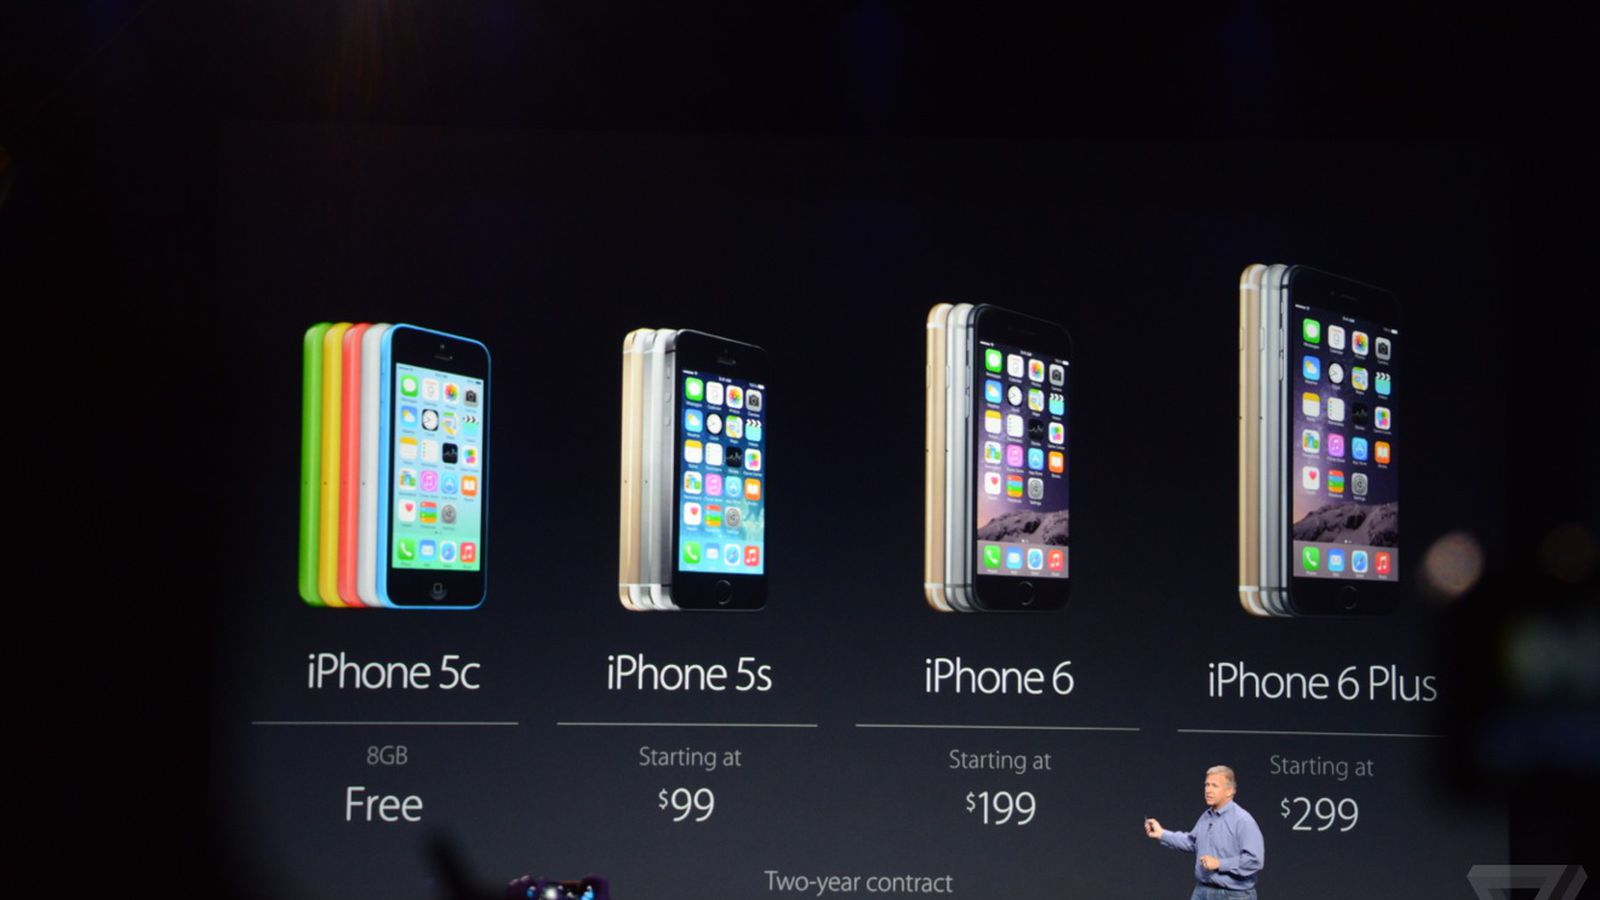 iphone 5s free apple drops iphone 5s price to 99 makes iphone 5c its 11197